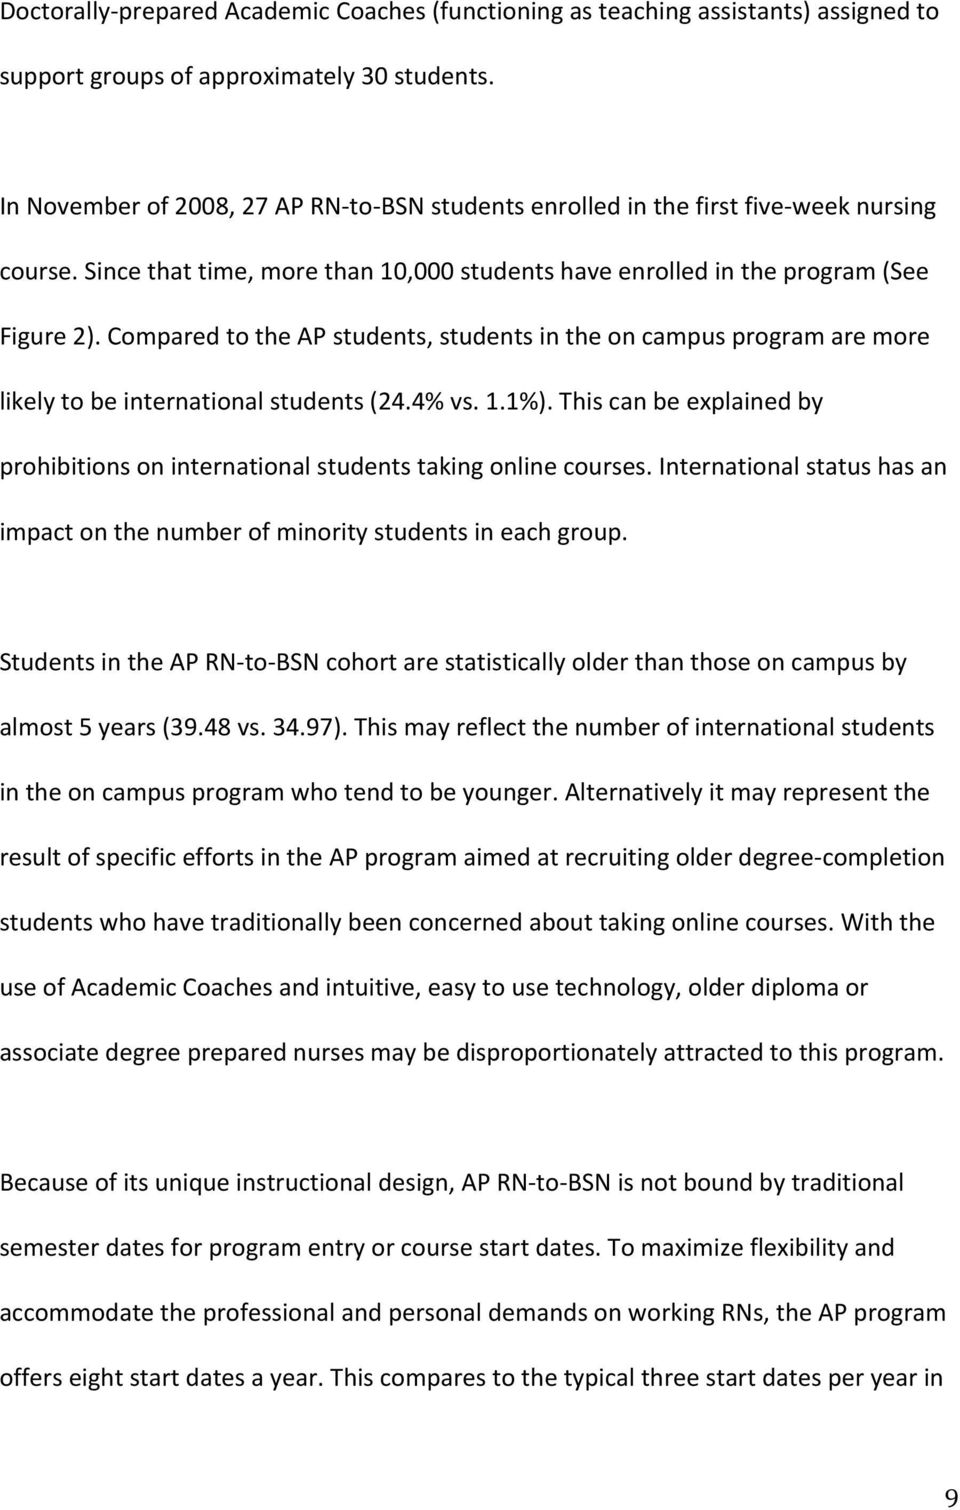 Compared to the AP students, students in the on campus program are more likely to be international students (24.4% vs. 1.1%).